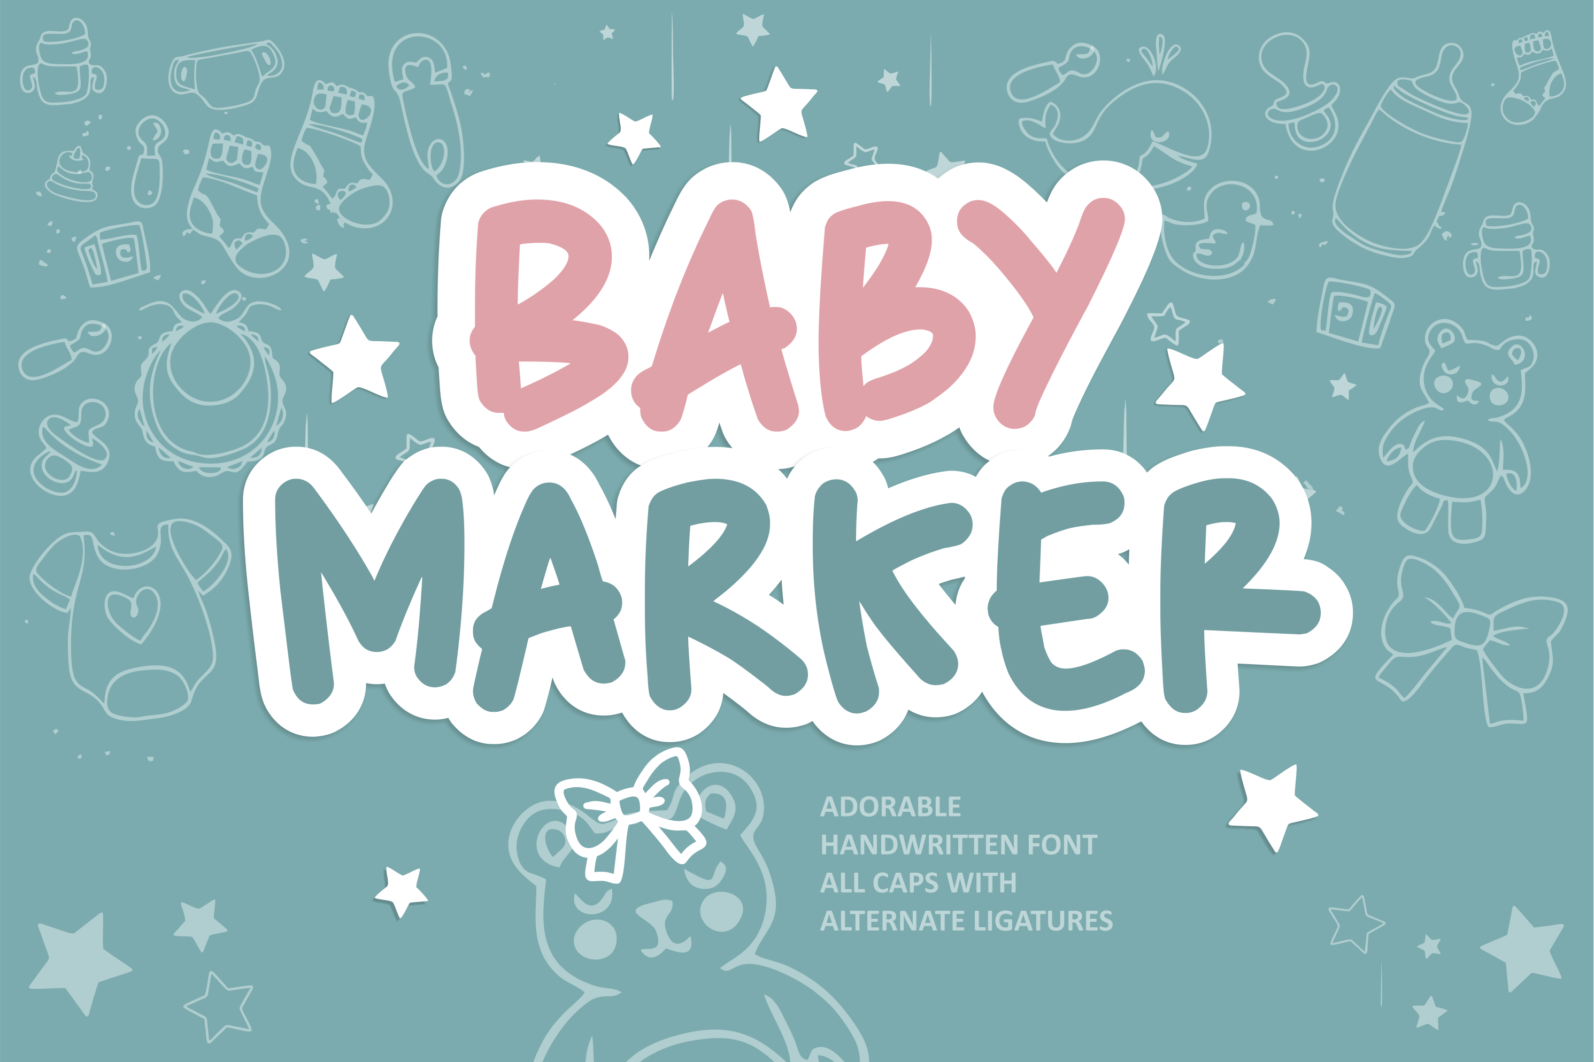 Creative Font Bundle - Preview 1 Baby Marker -